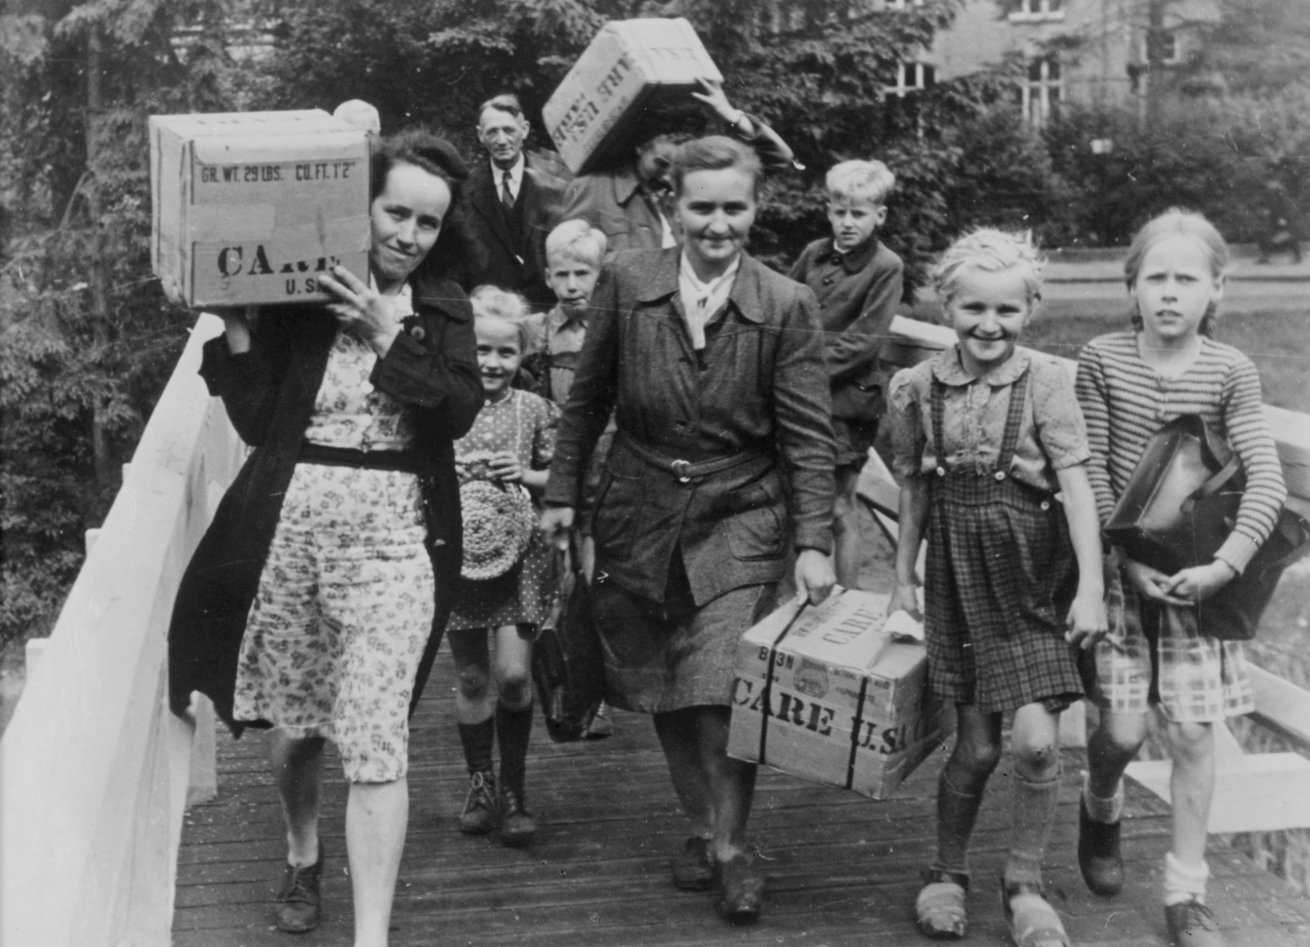 People carrying CARE packages